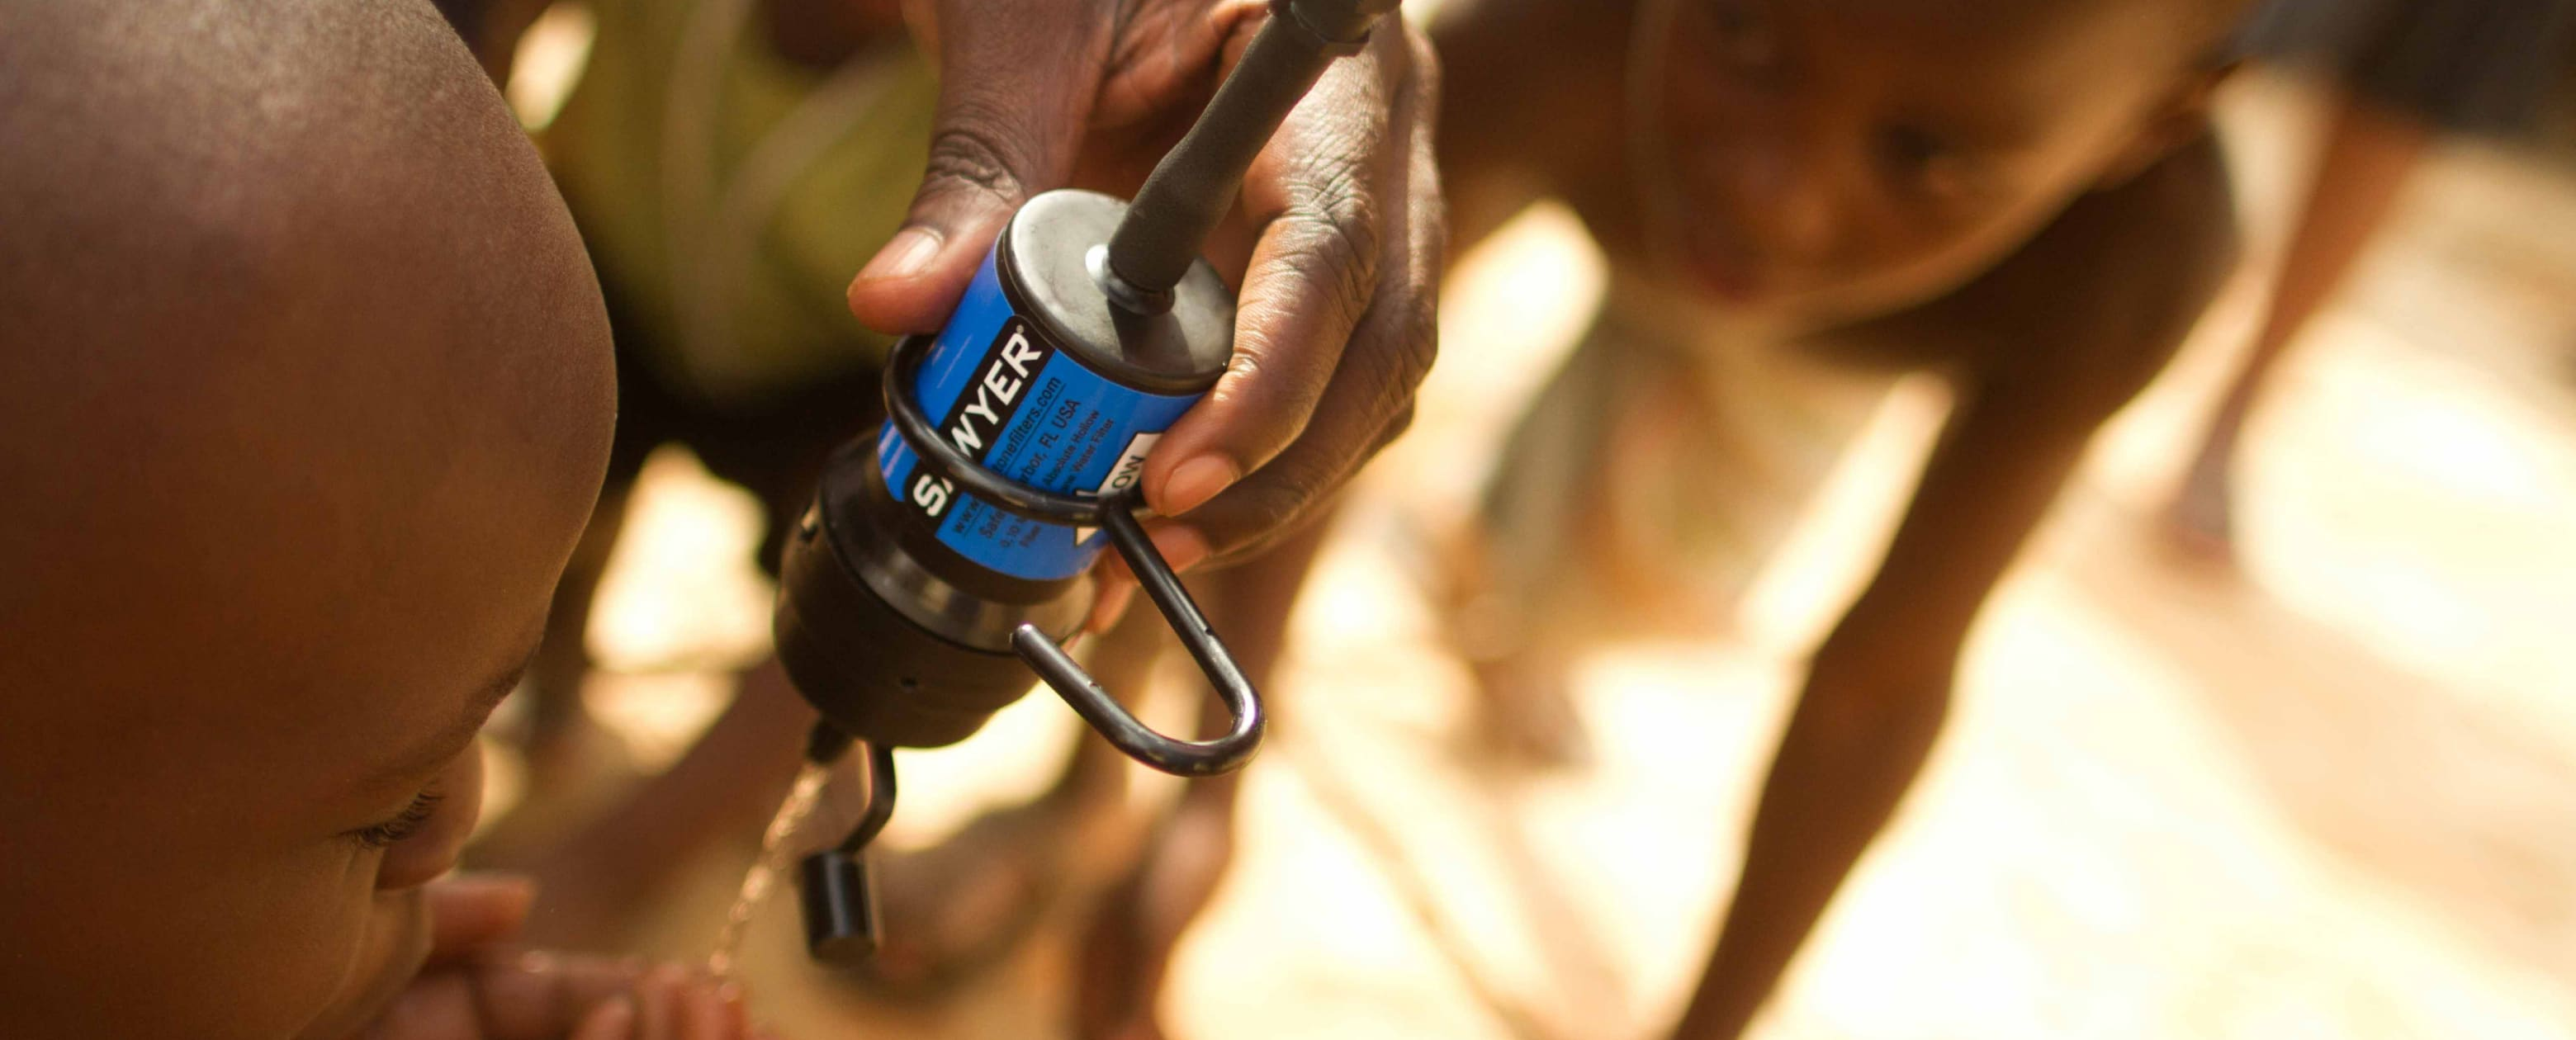 A Liberian child drinks from a Sawyer water filter.